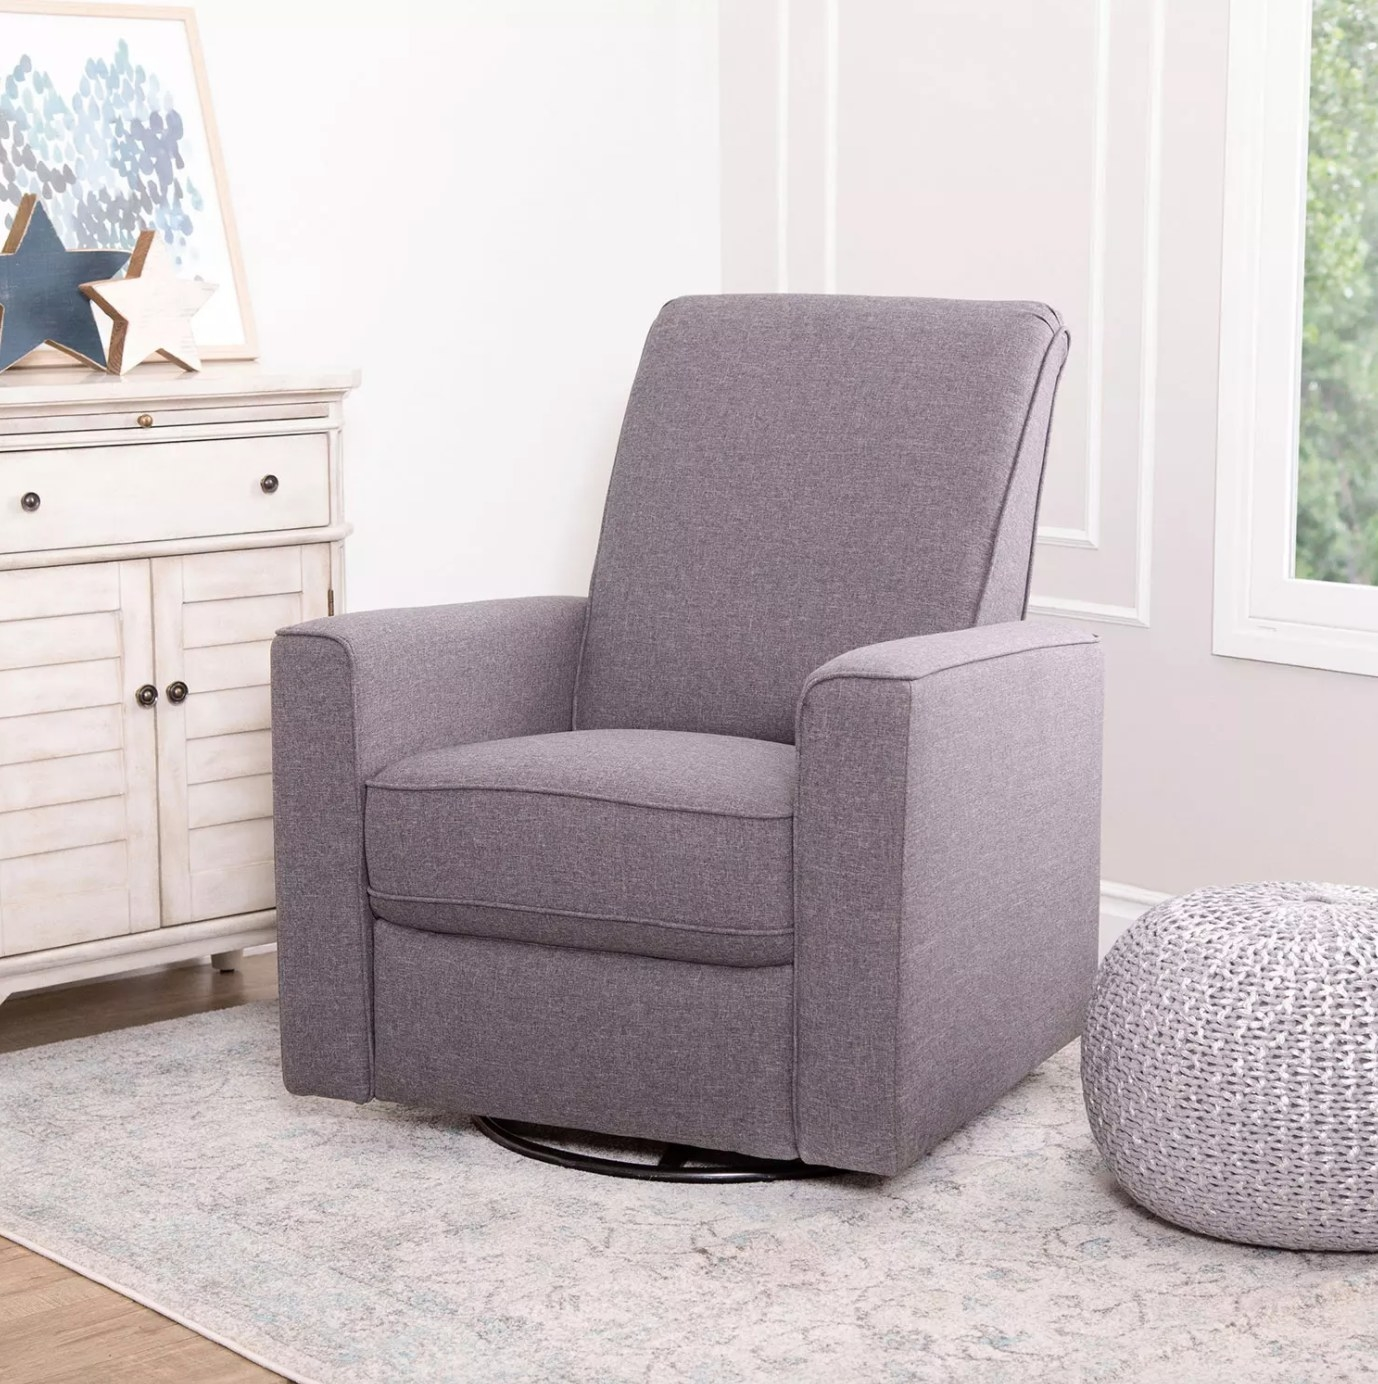 The swivel glider recliner in grey